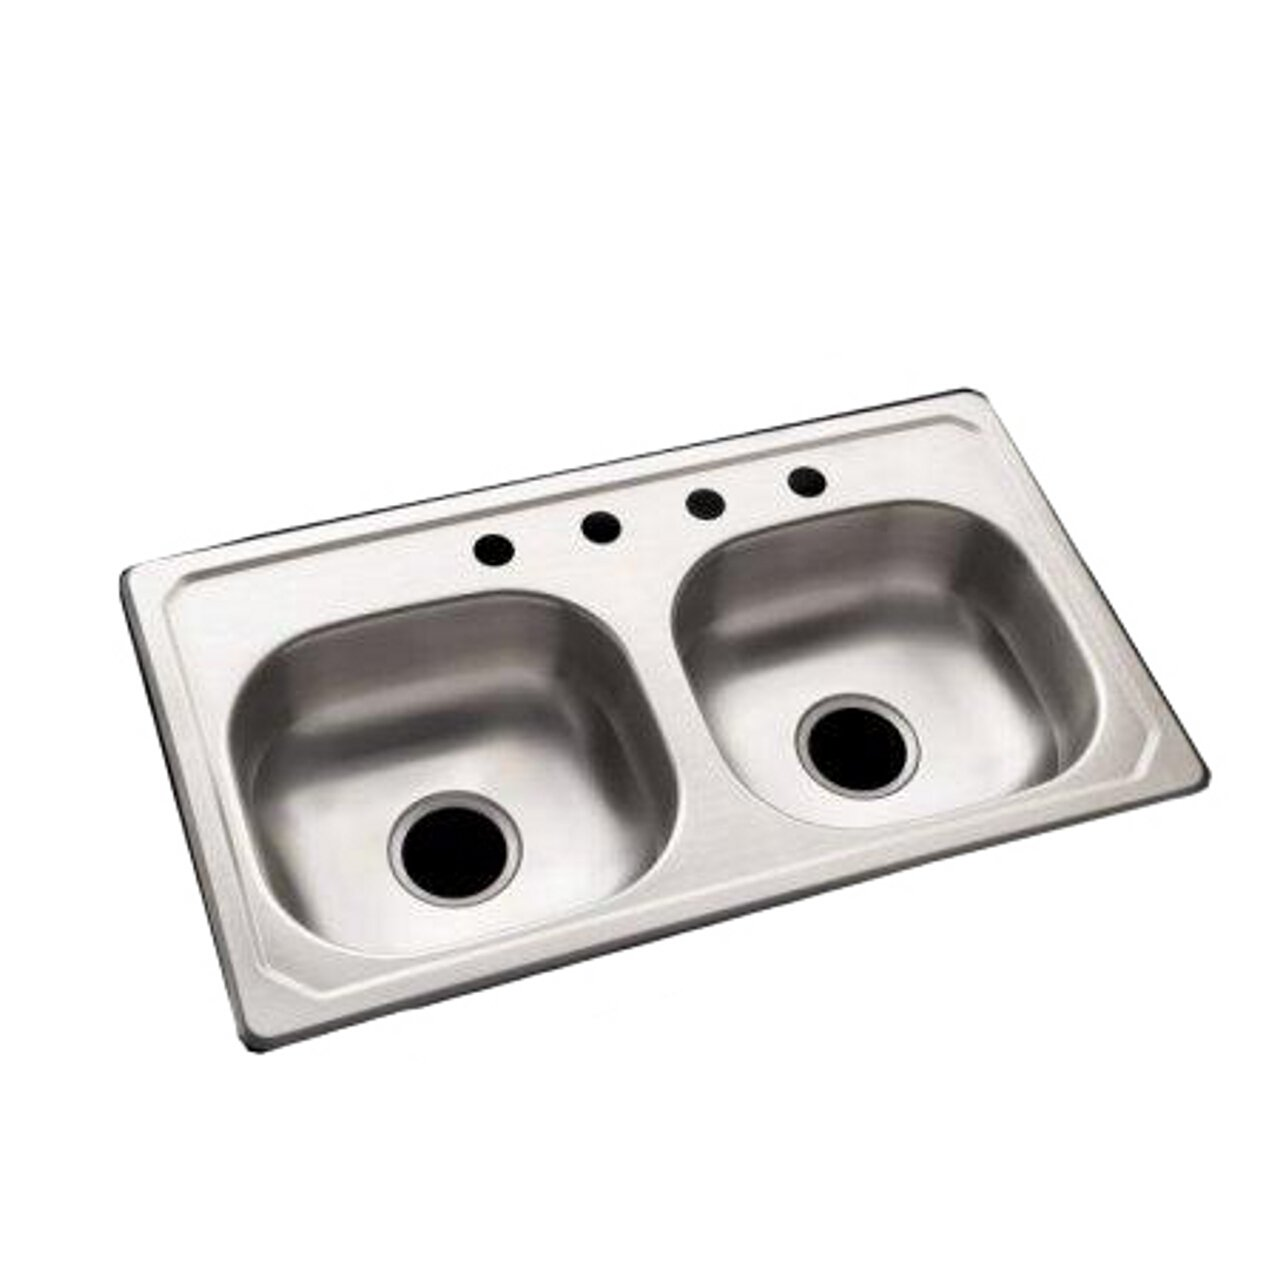 STERLING 14619-4-NA Specialty Sink 19-inch by 33-inch Top-mount Double Equal Bowl Kitchen Sink, Stainless Steel